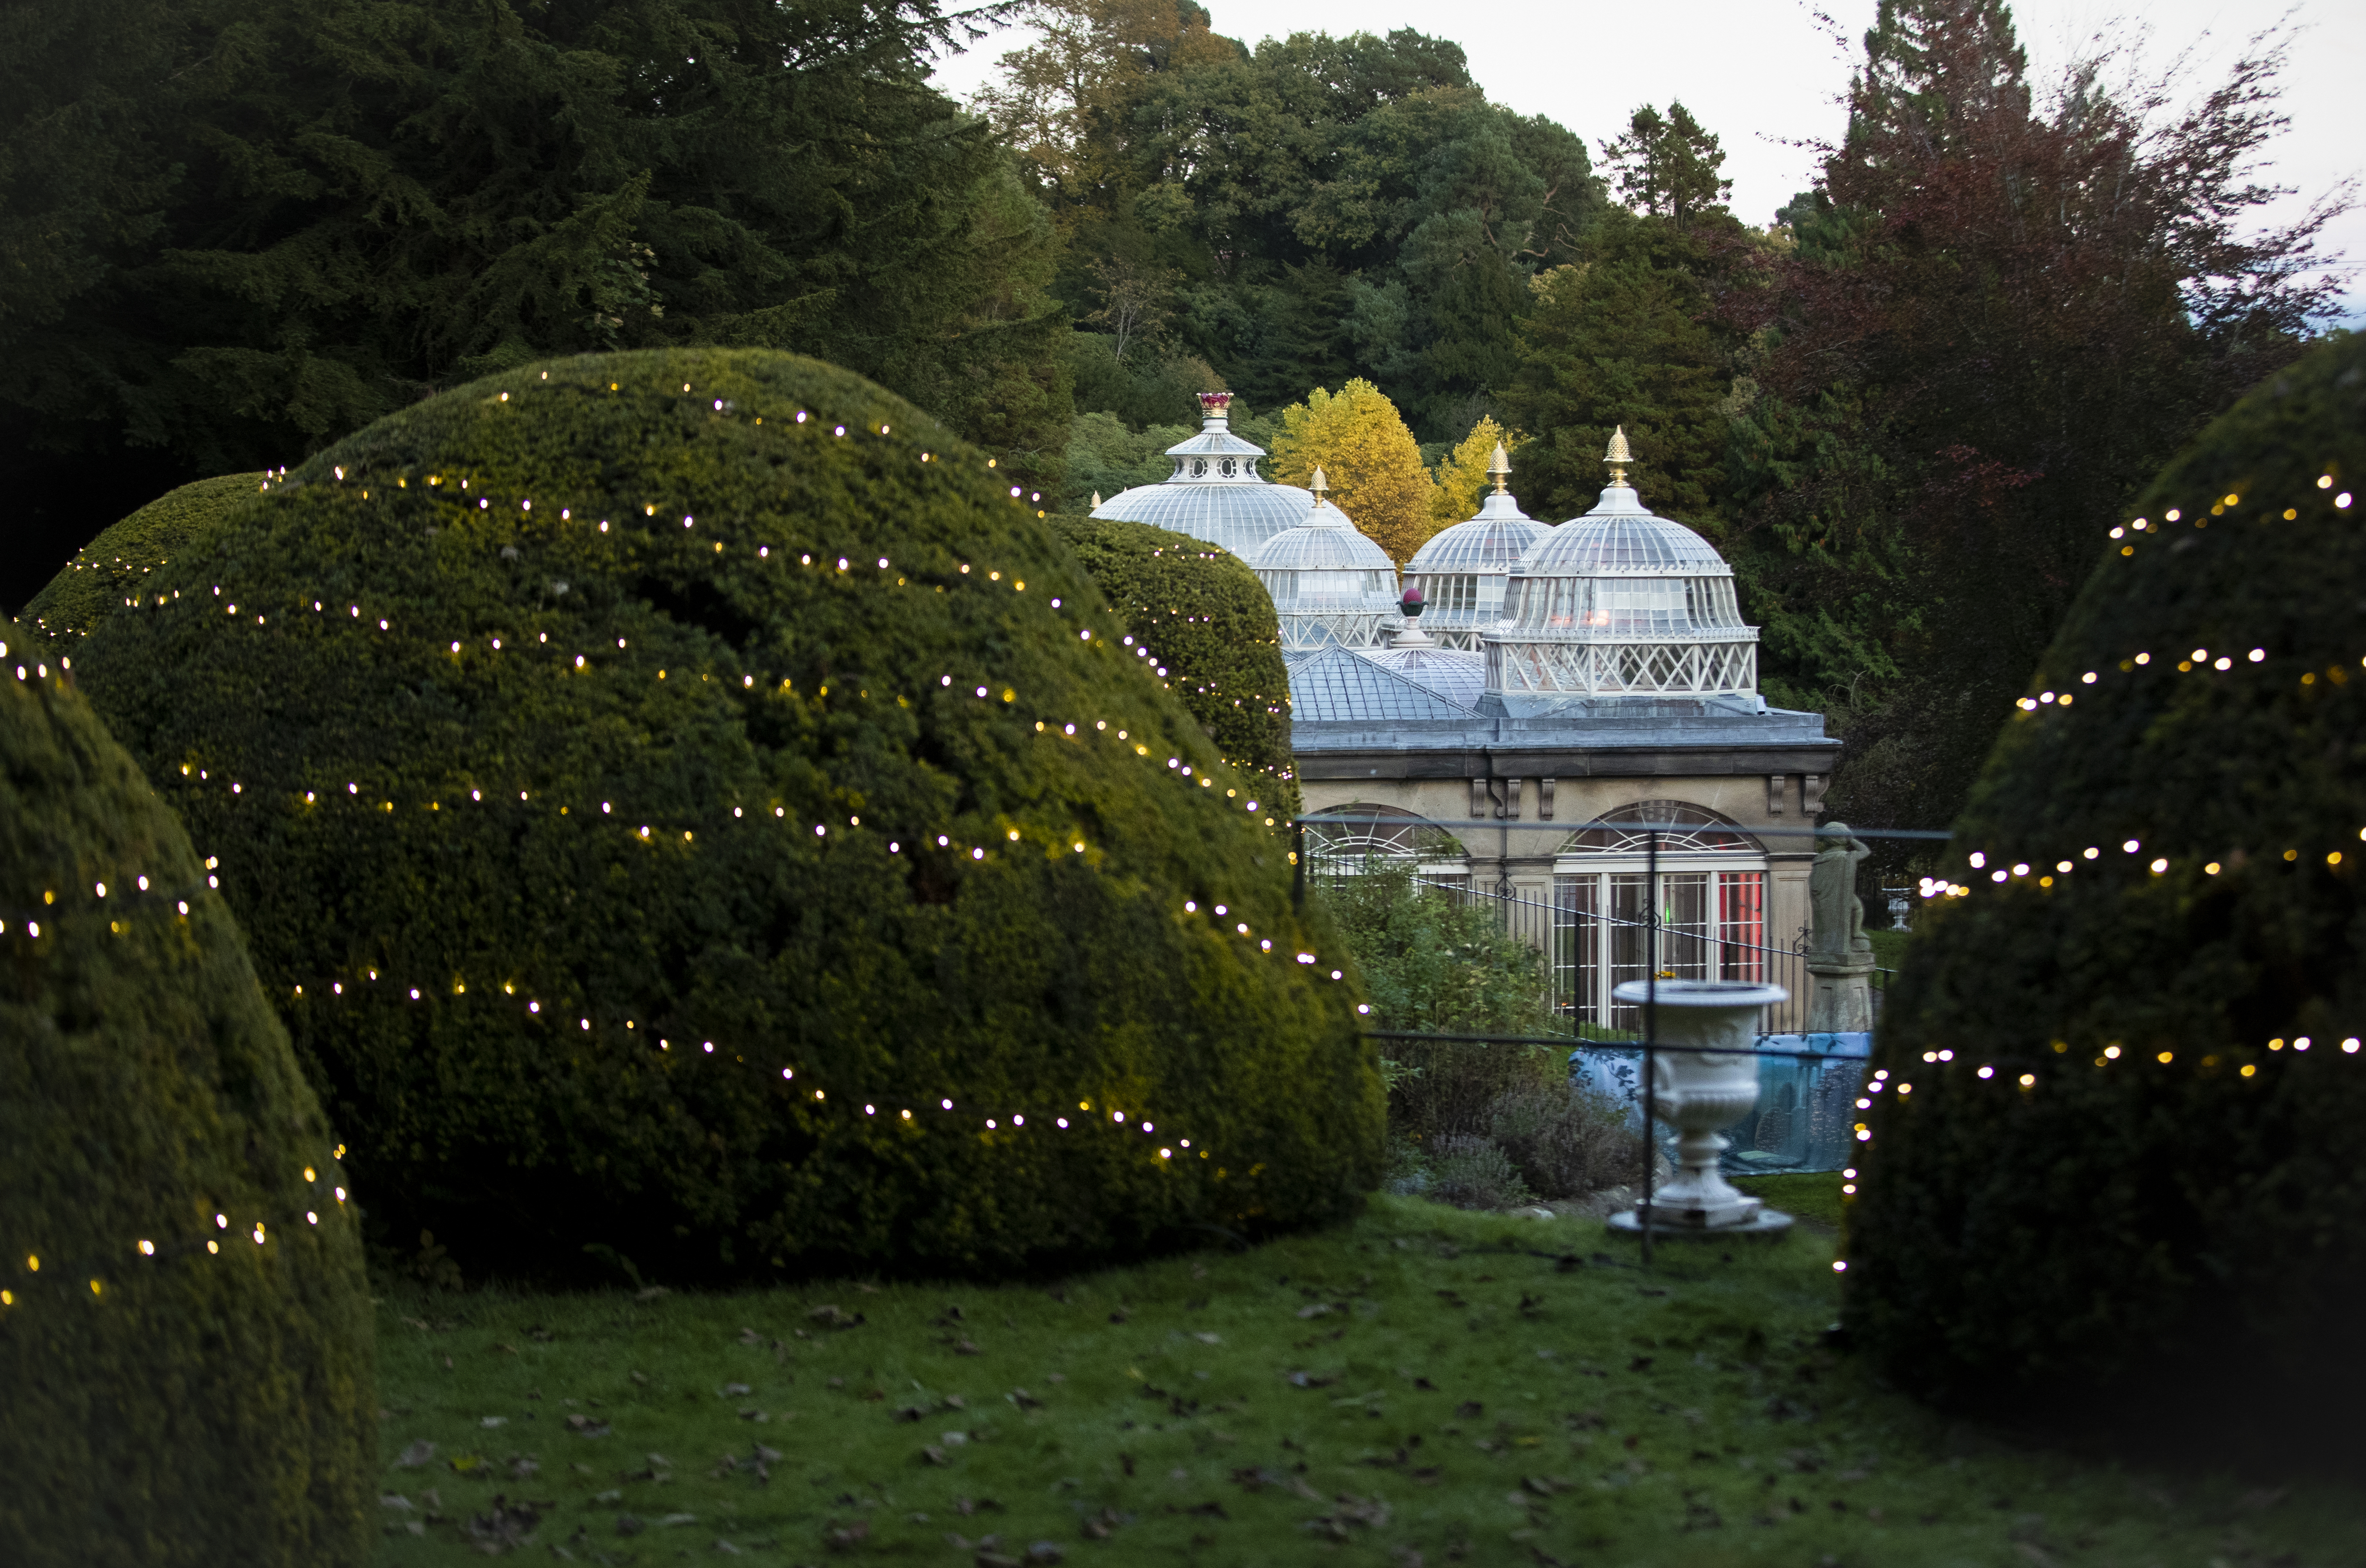 The historic conservatory in the illuminated Alton Towers Gardens